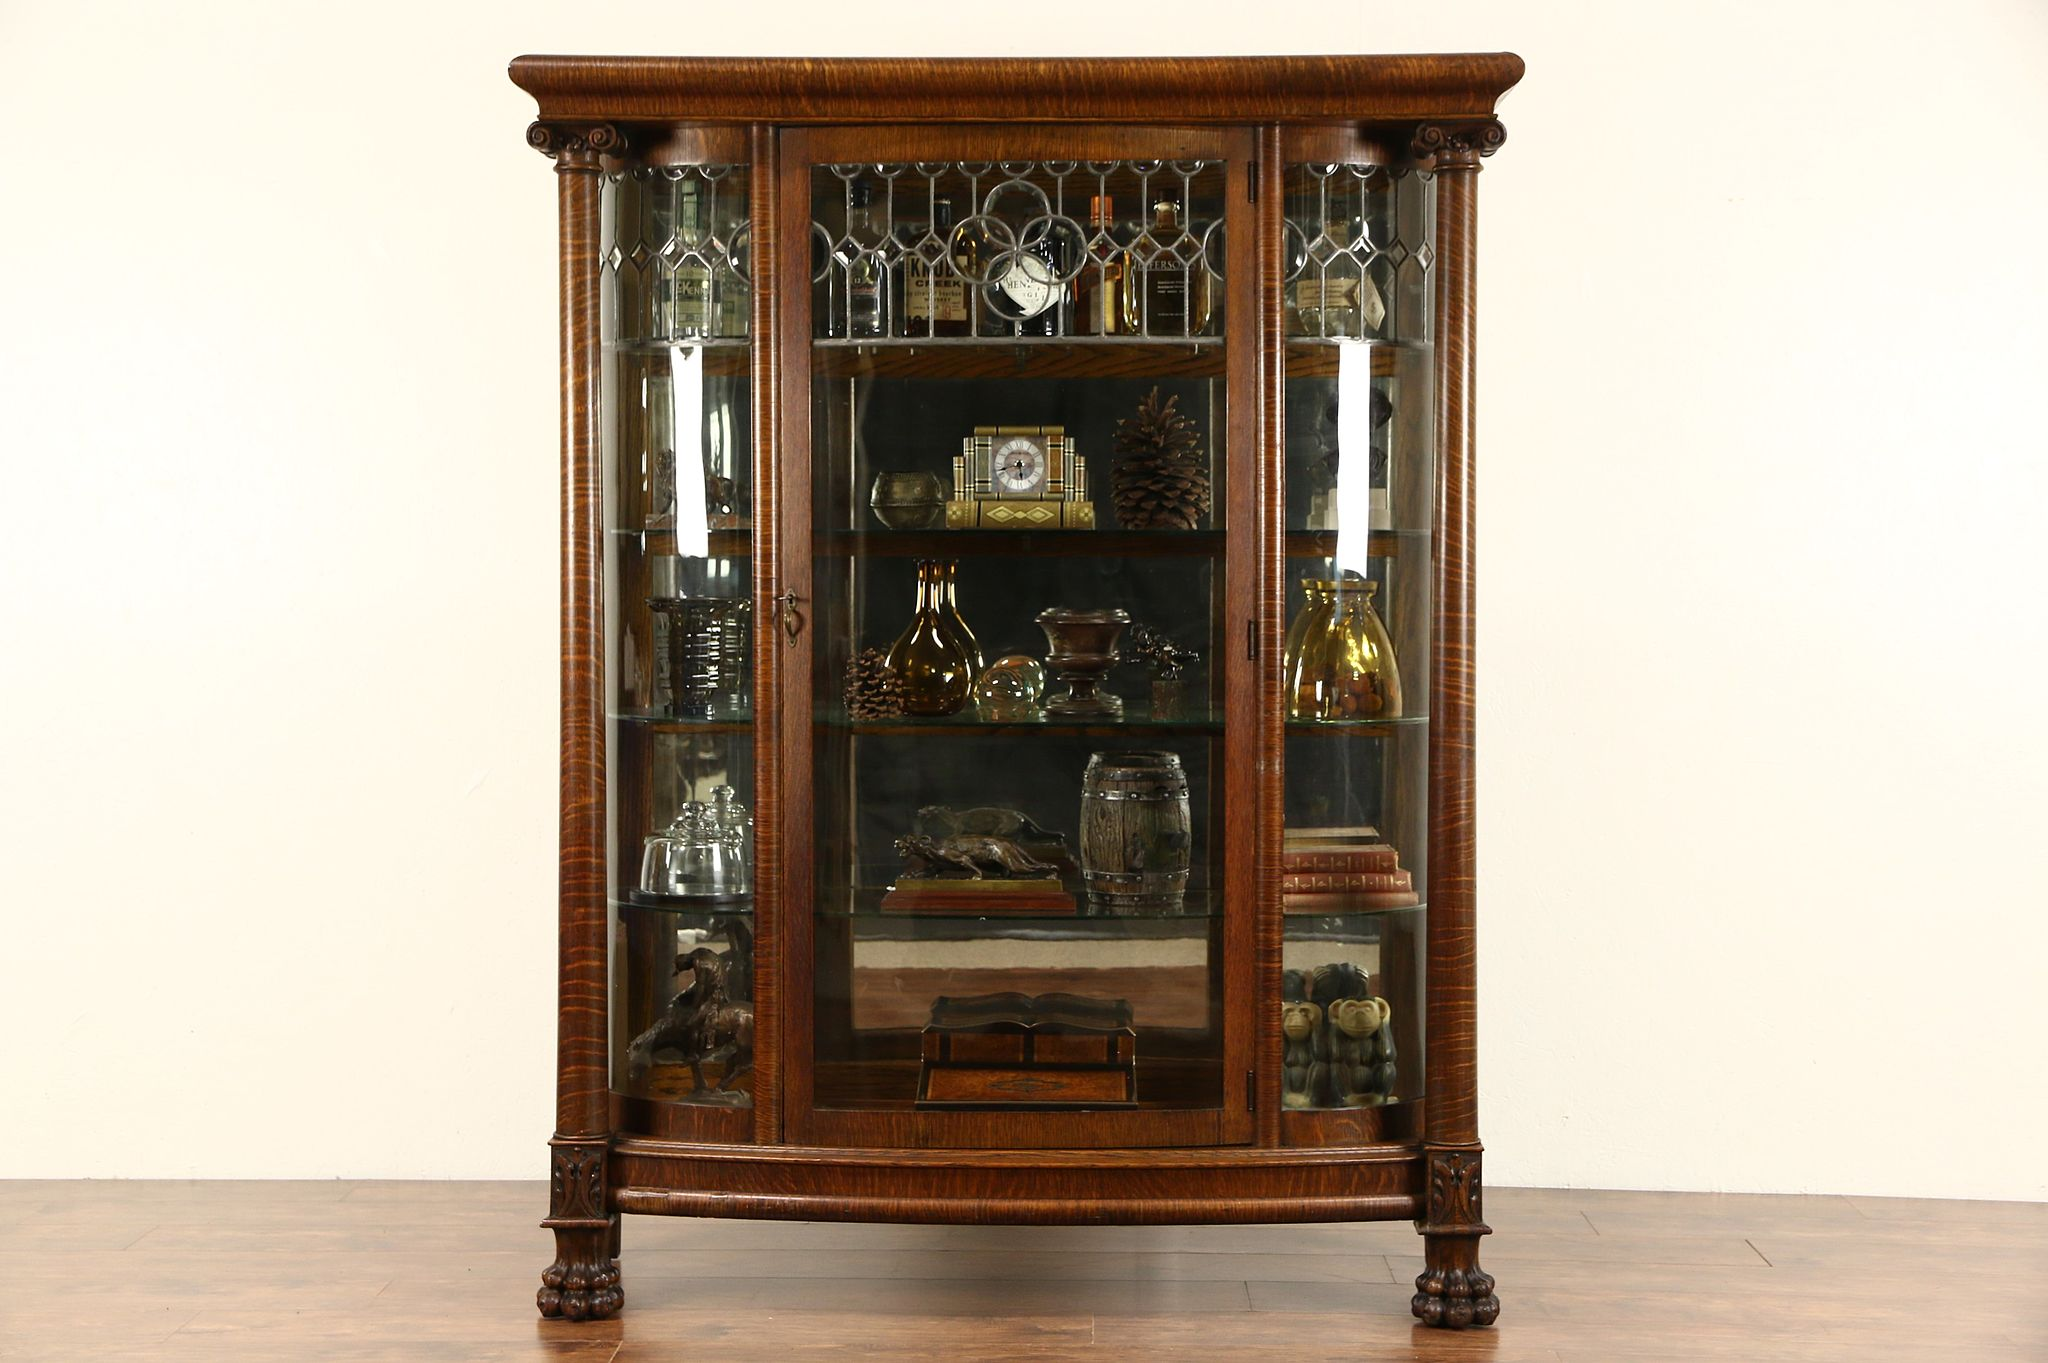 Attirant Curved Glass 1900 Antique Oak China Cabinet, Curio Display, Leaded Beveled  Glass